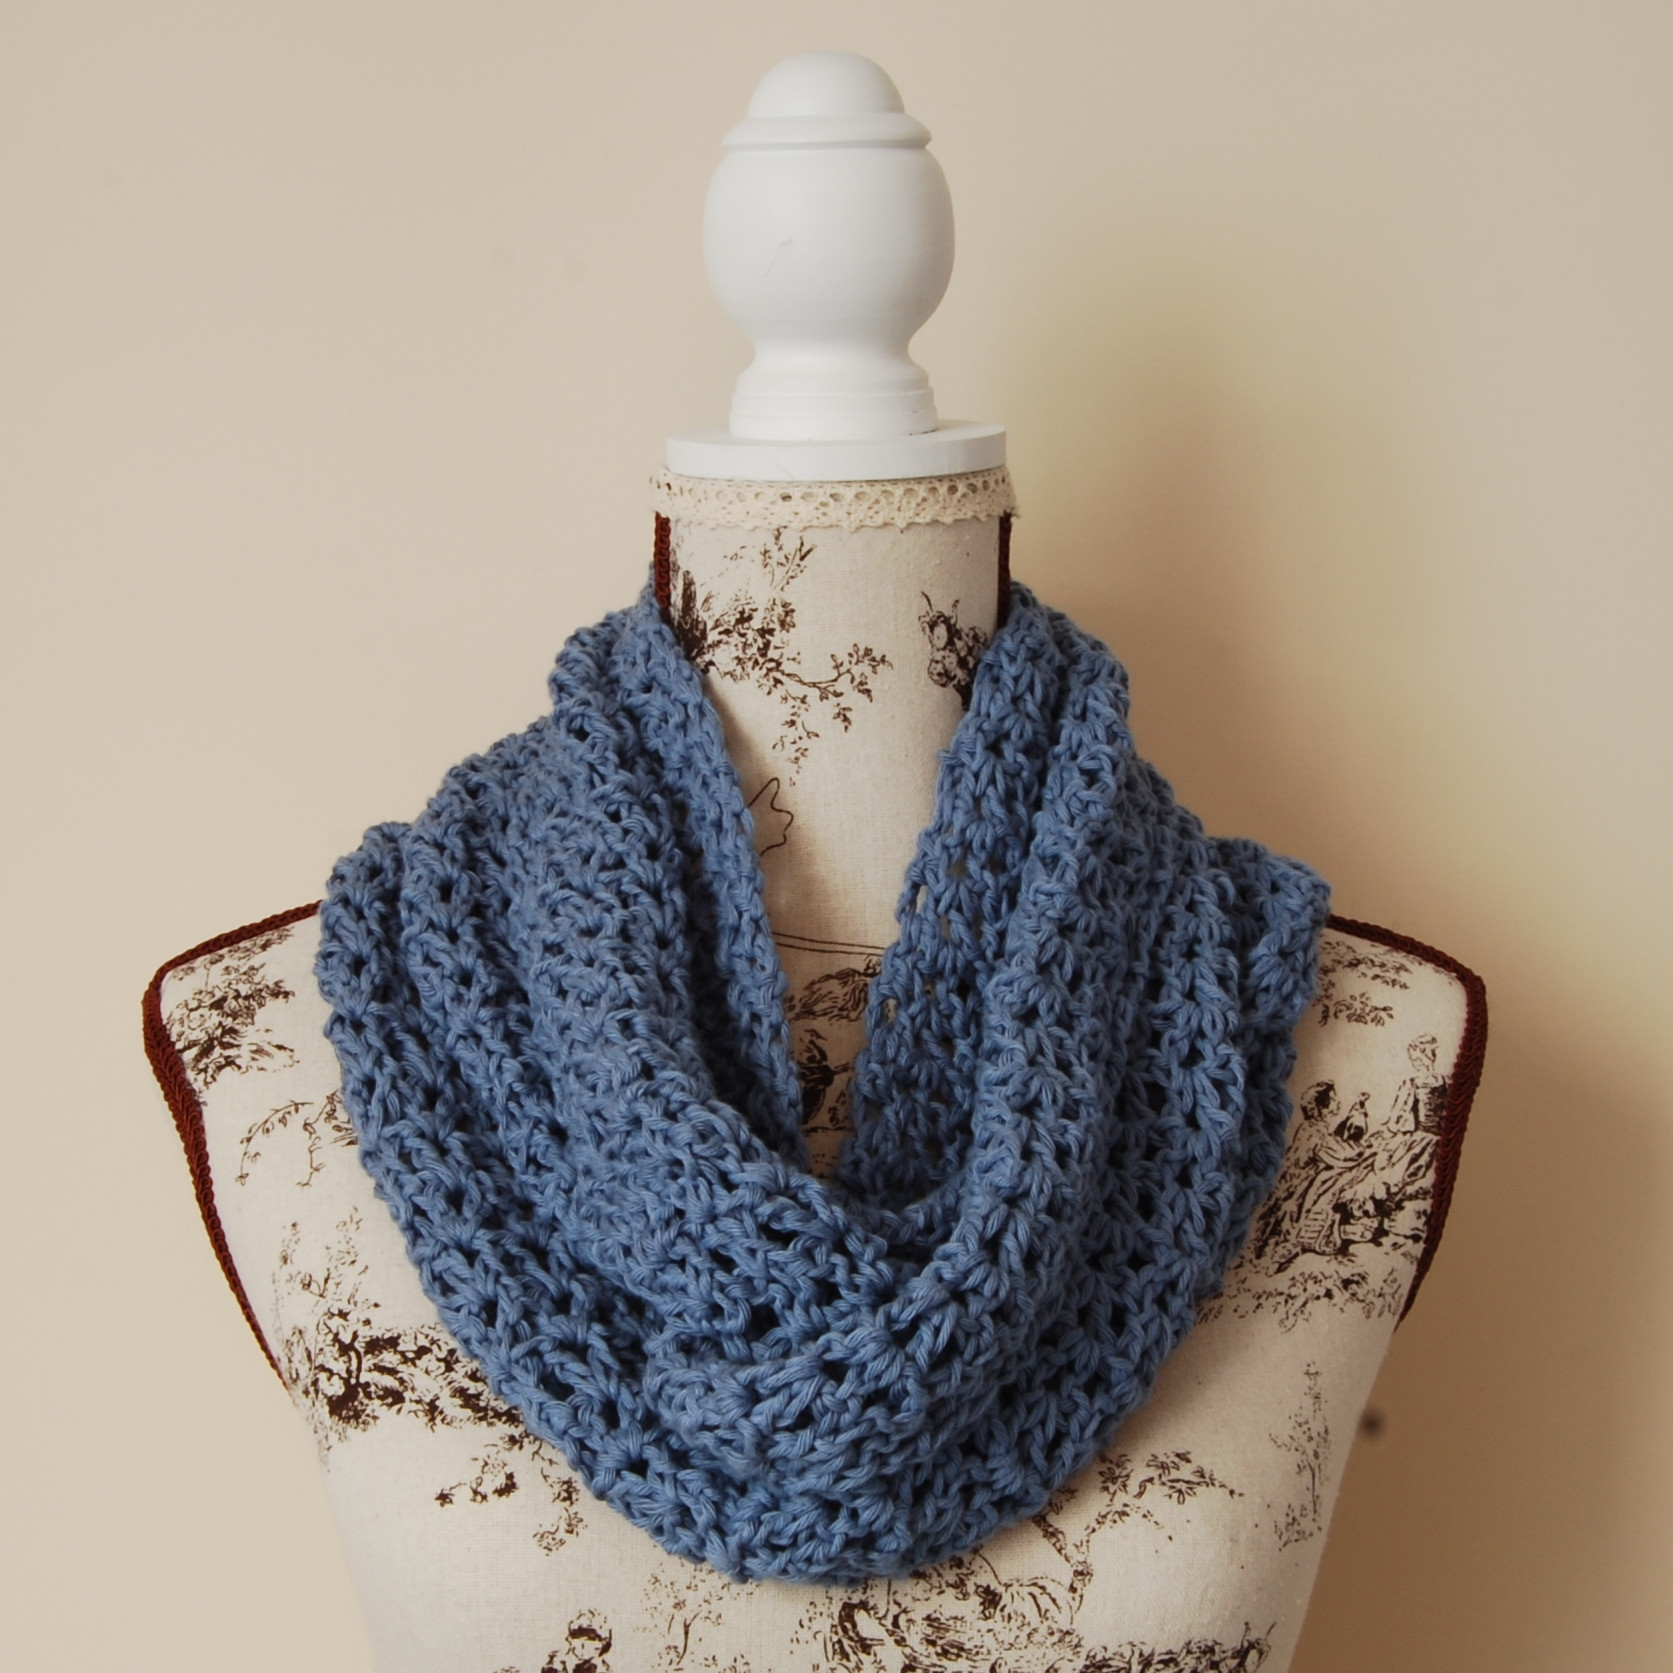 Easy Crochet Scarf Patterns Unique Easy Infinity Scarf Crochet Pattern Of Attractive 42 Ideas Easy Crochet Scarf Patterns